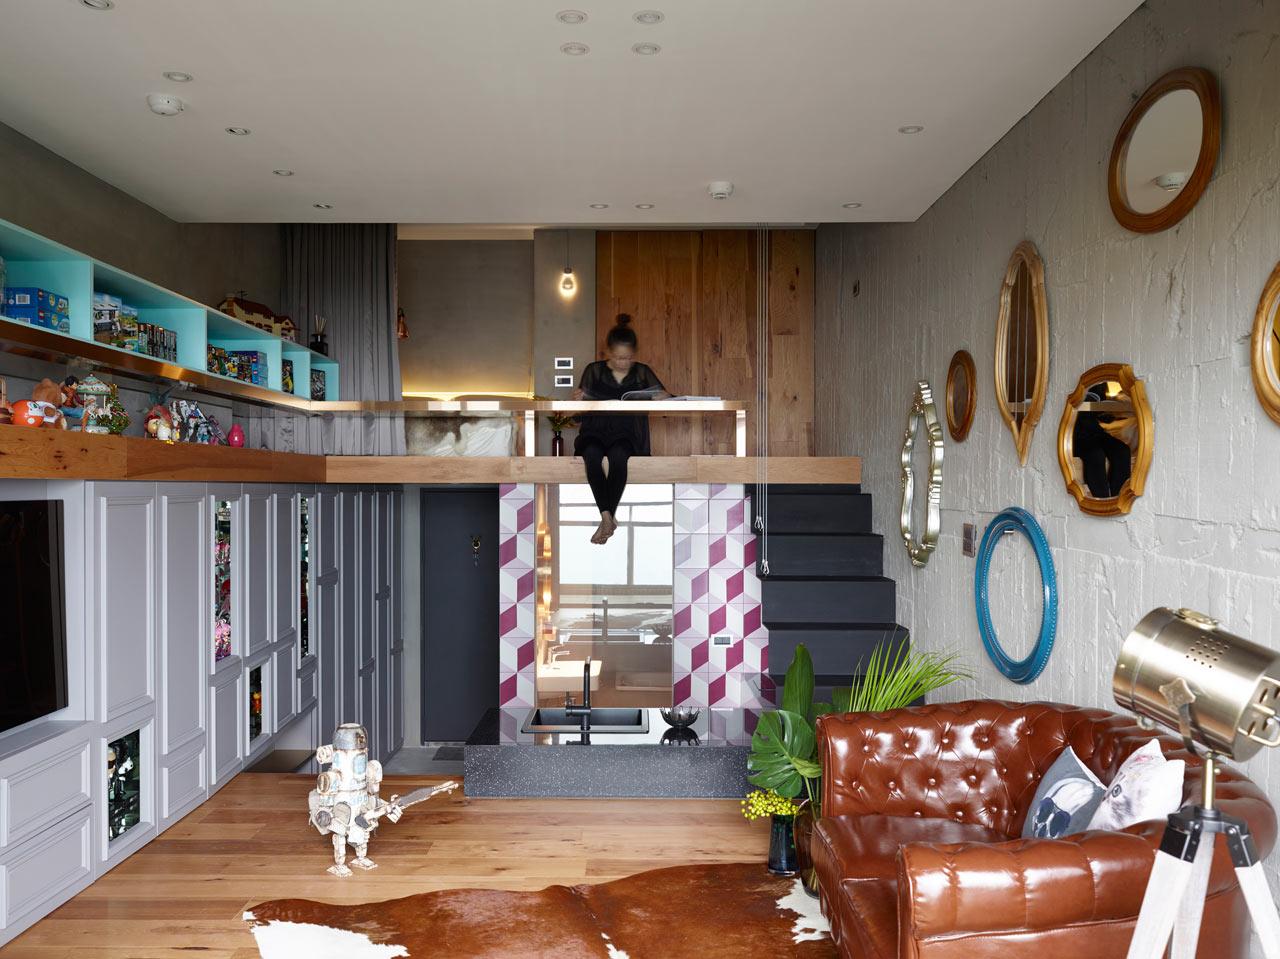 Studio House Design a taipei house designed for toy building and collections - design milk